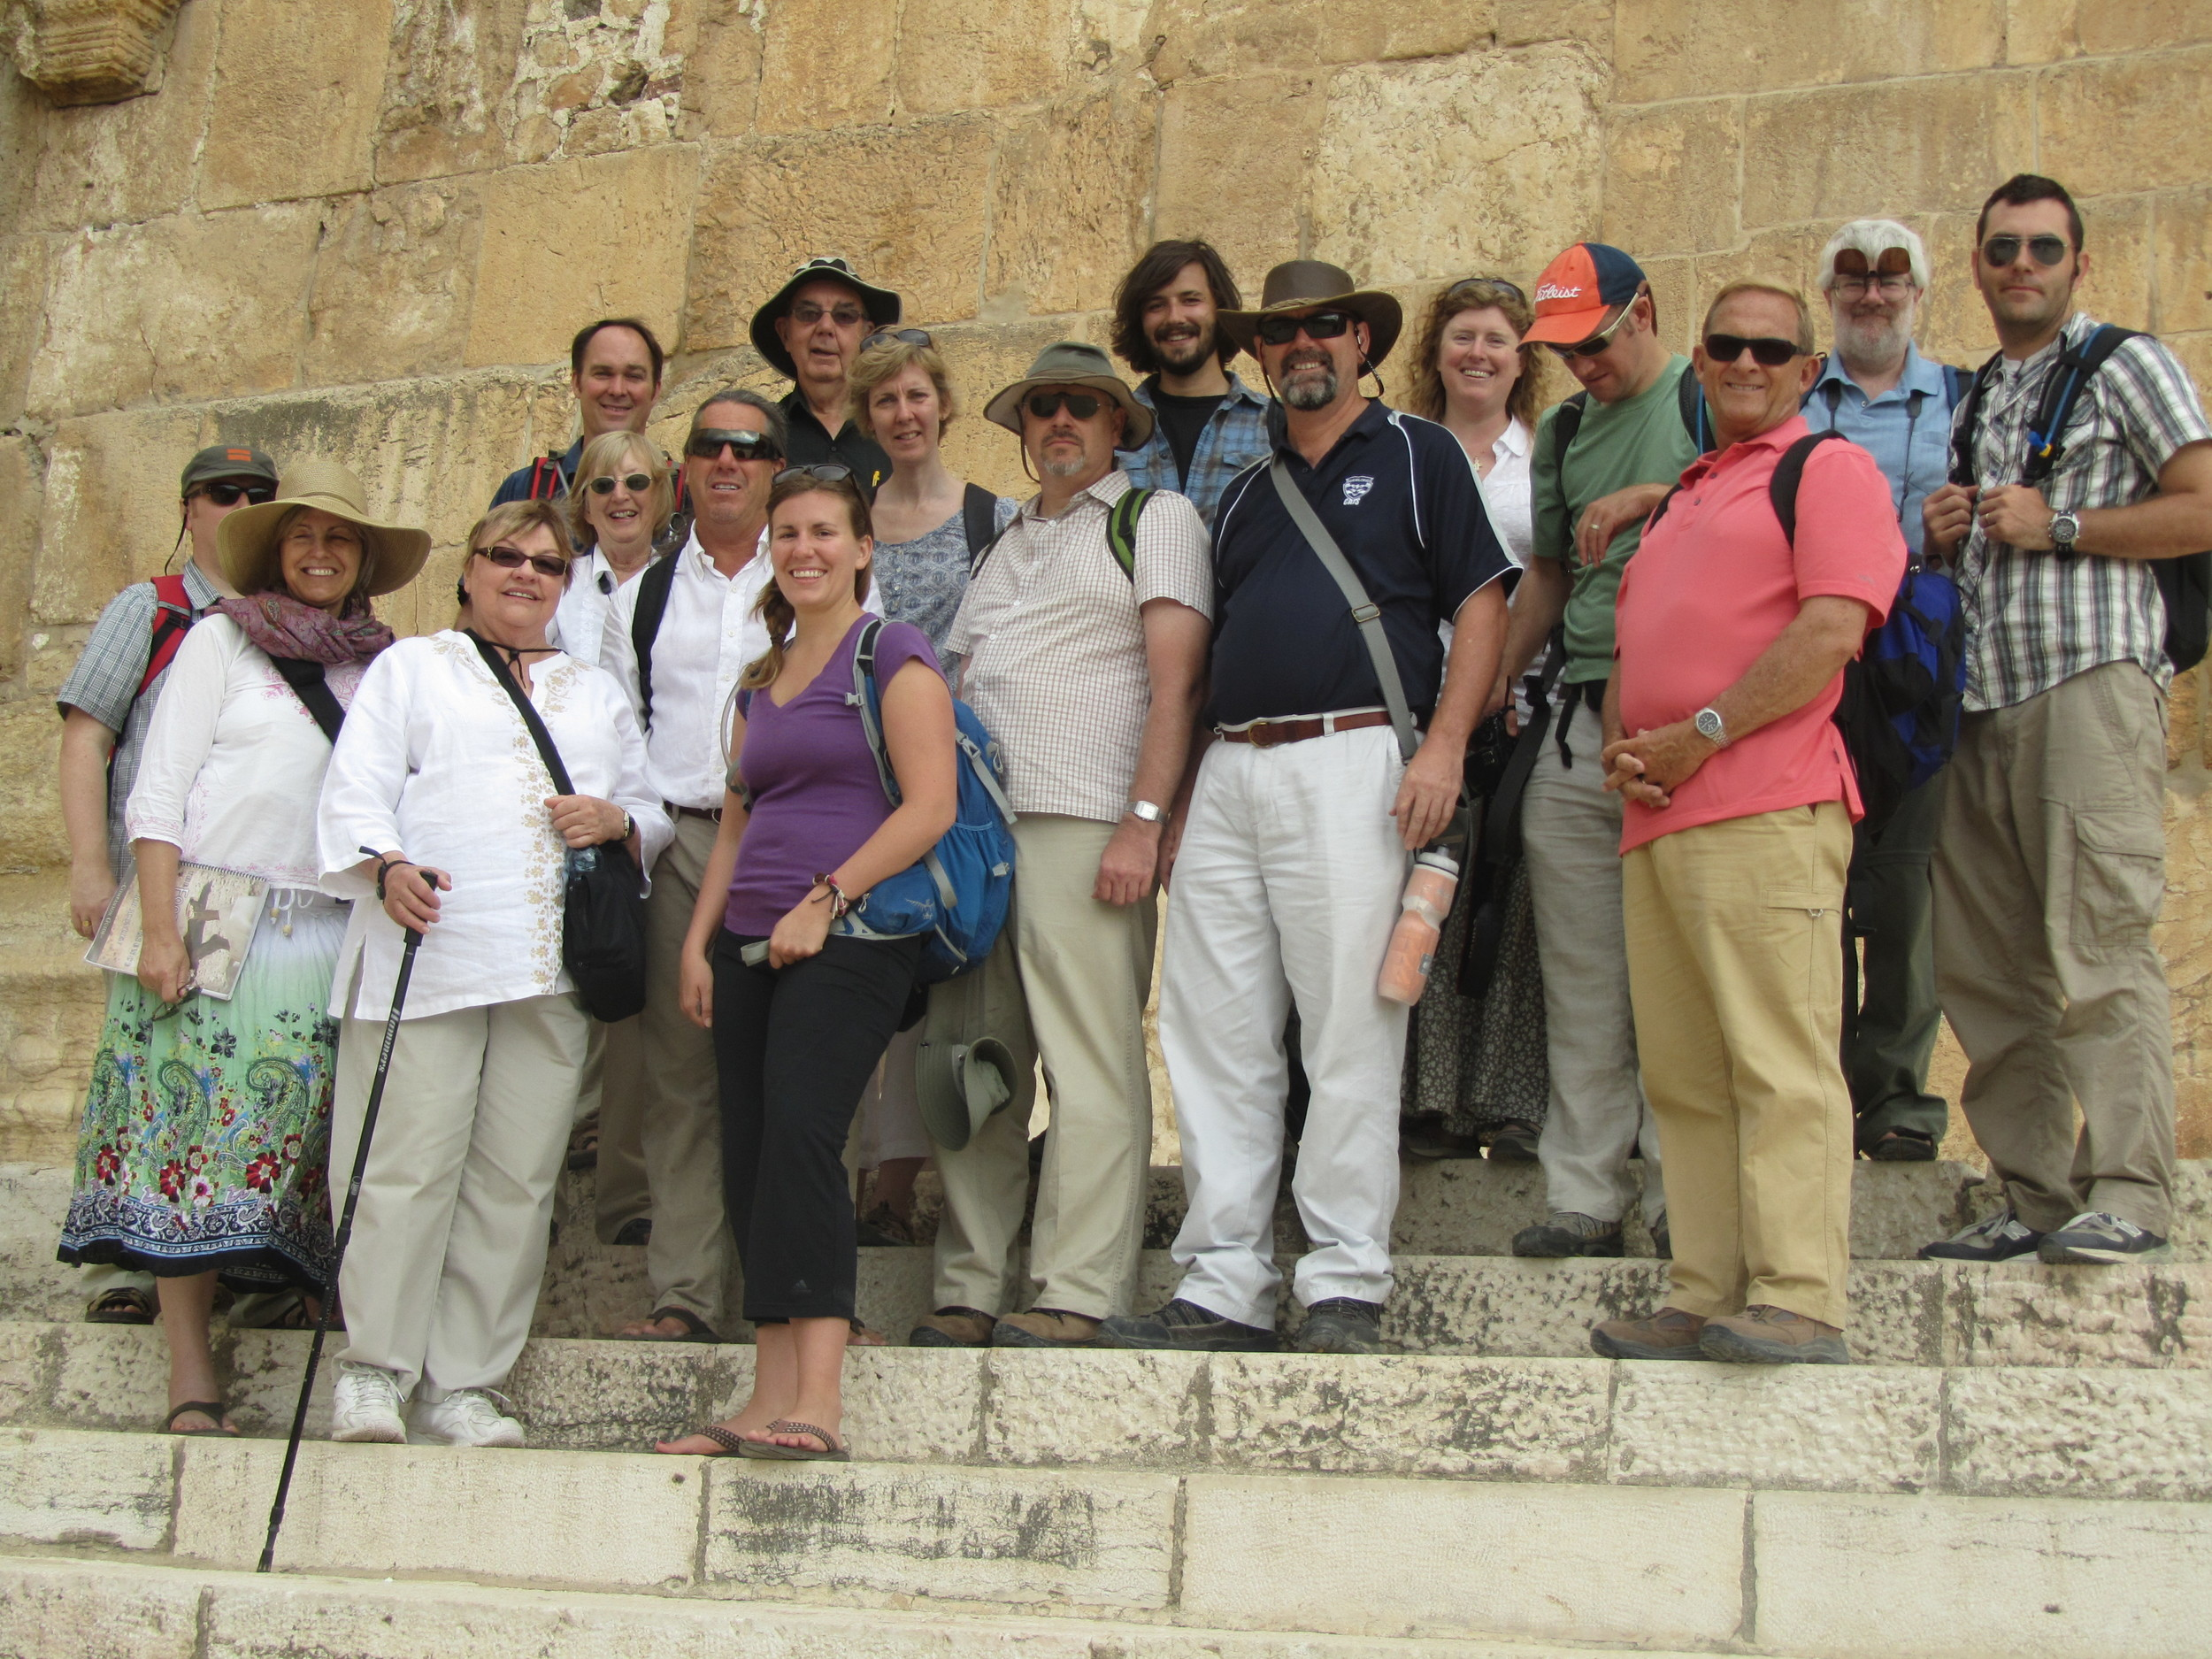 The group on the southern steps of the Temple